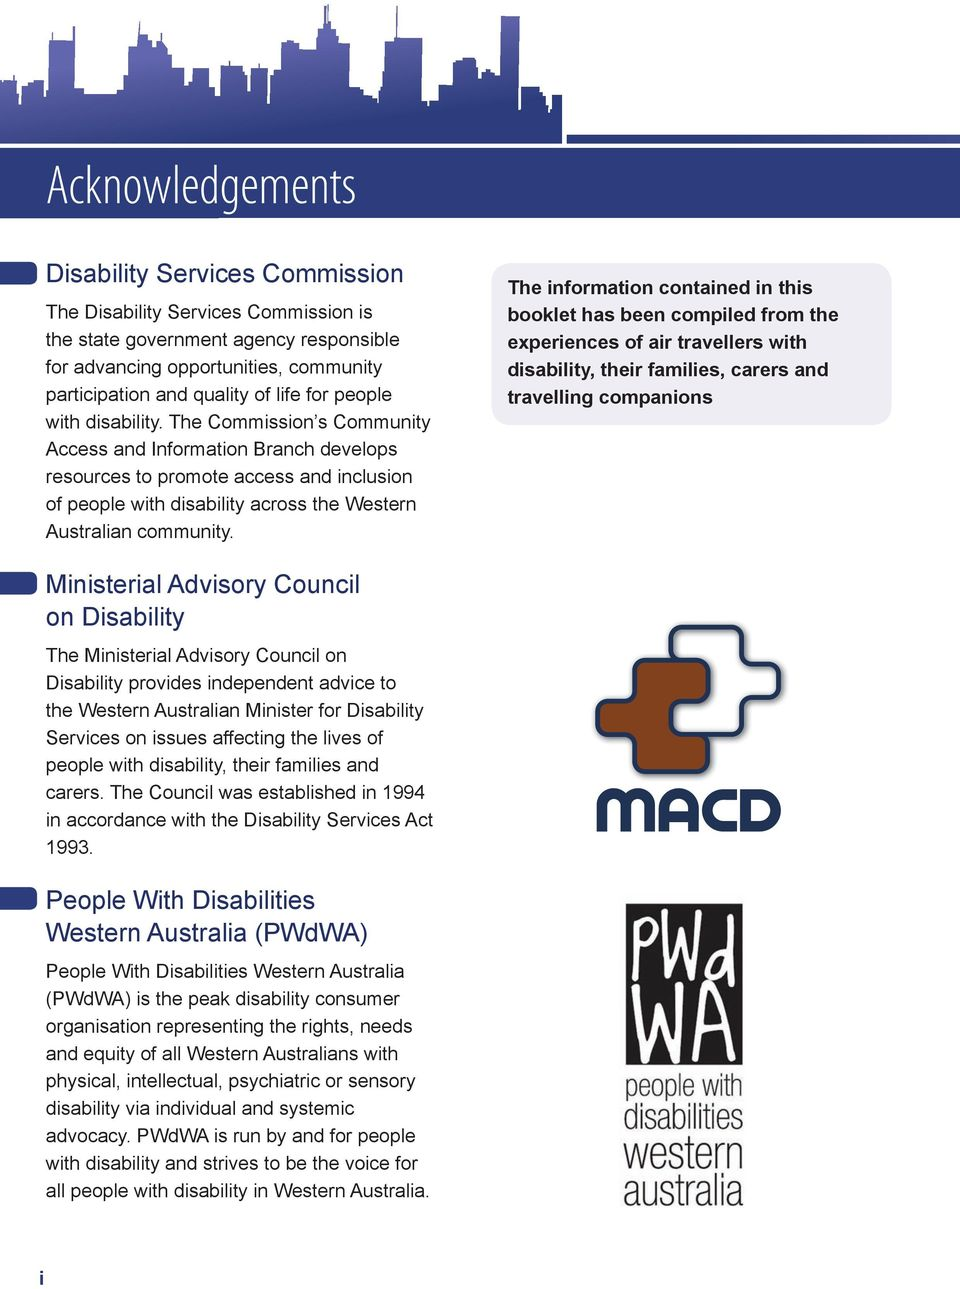 The Commission s Community Access and Information Branch develops resources to promote access and inclusion of people with disability across the Western Australian community.